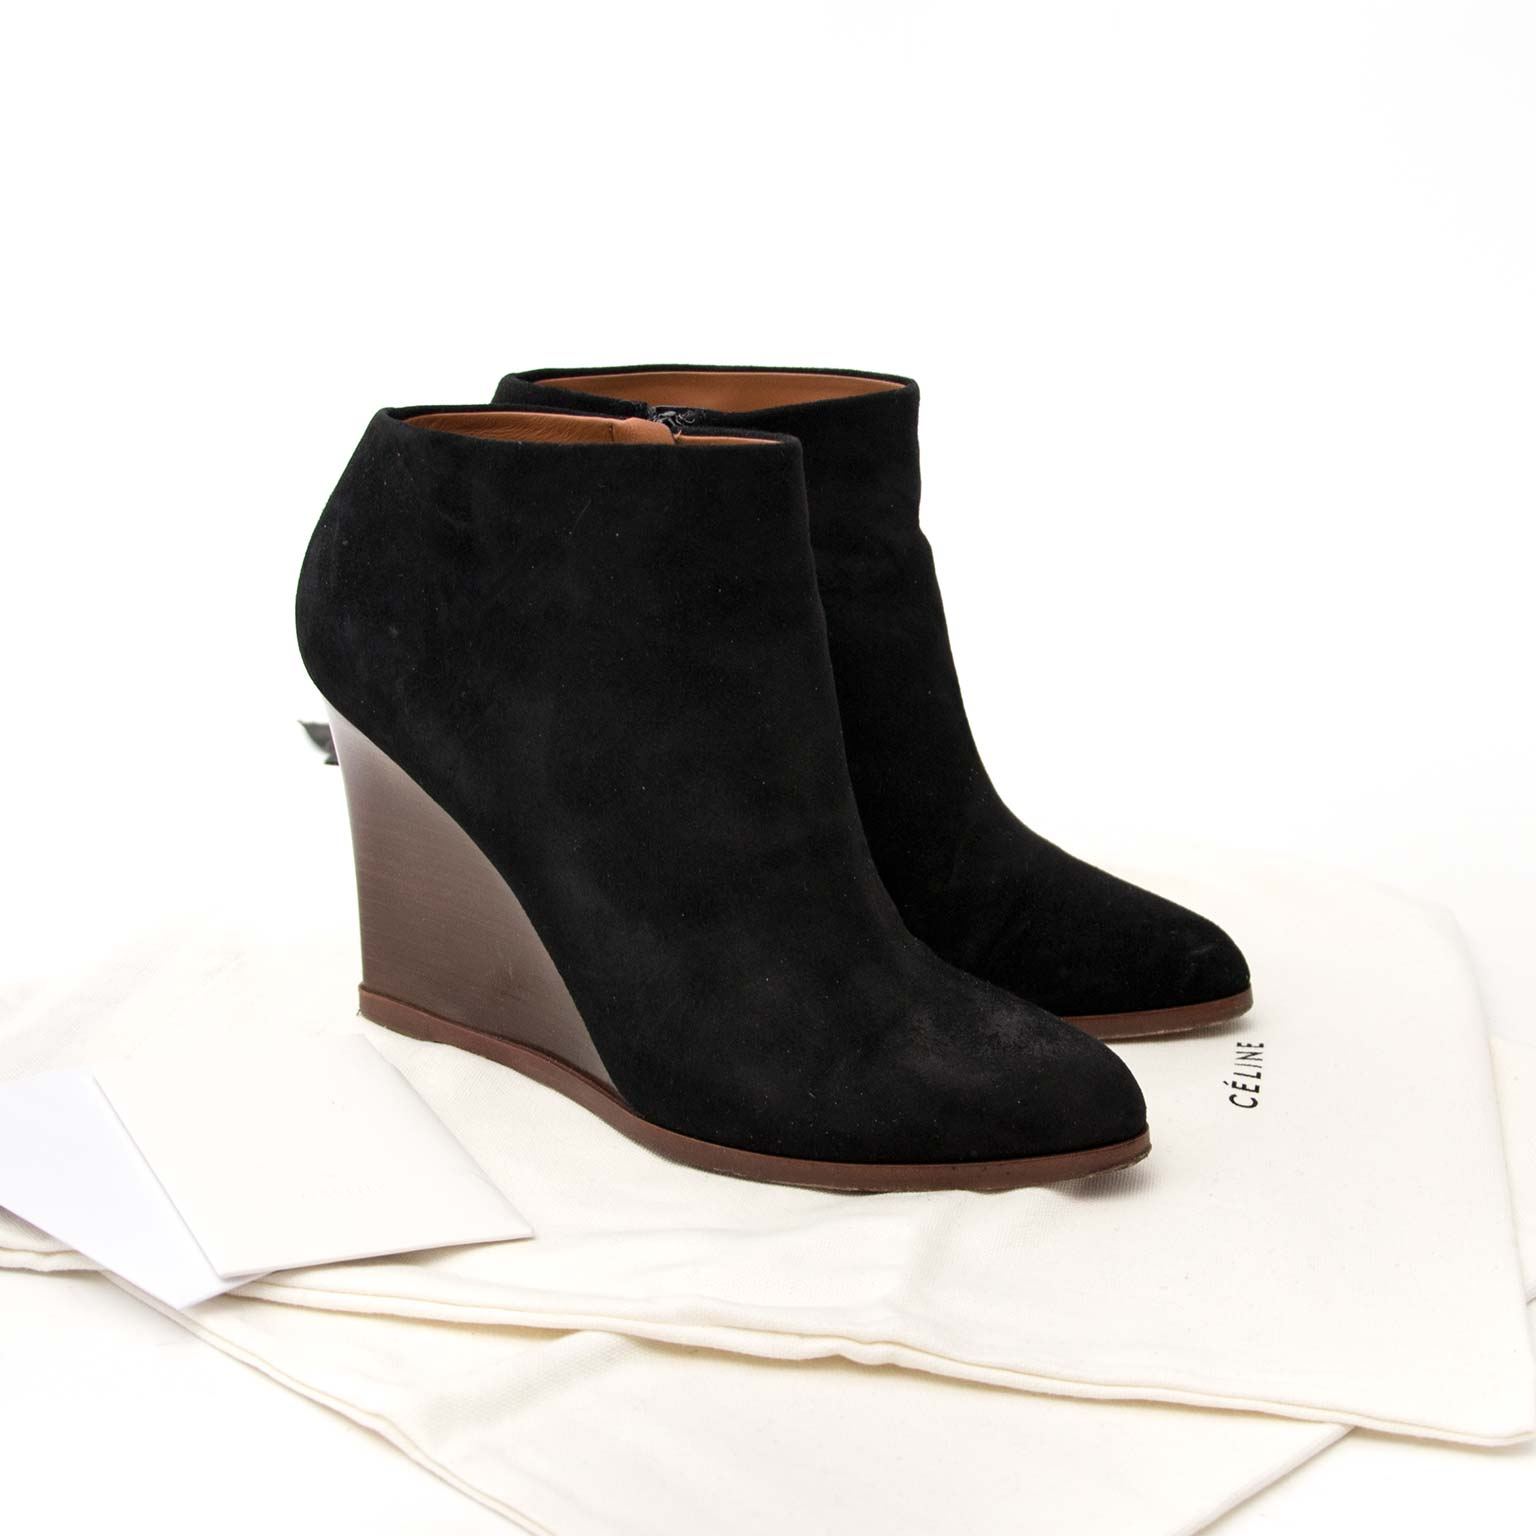 céline wooden wedge ankle boot now online at labellov.com for the best price